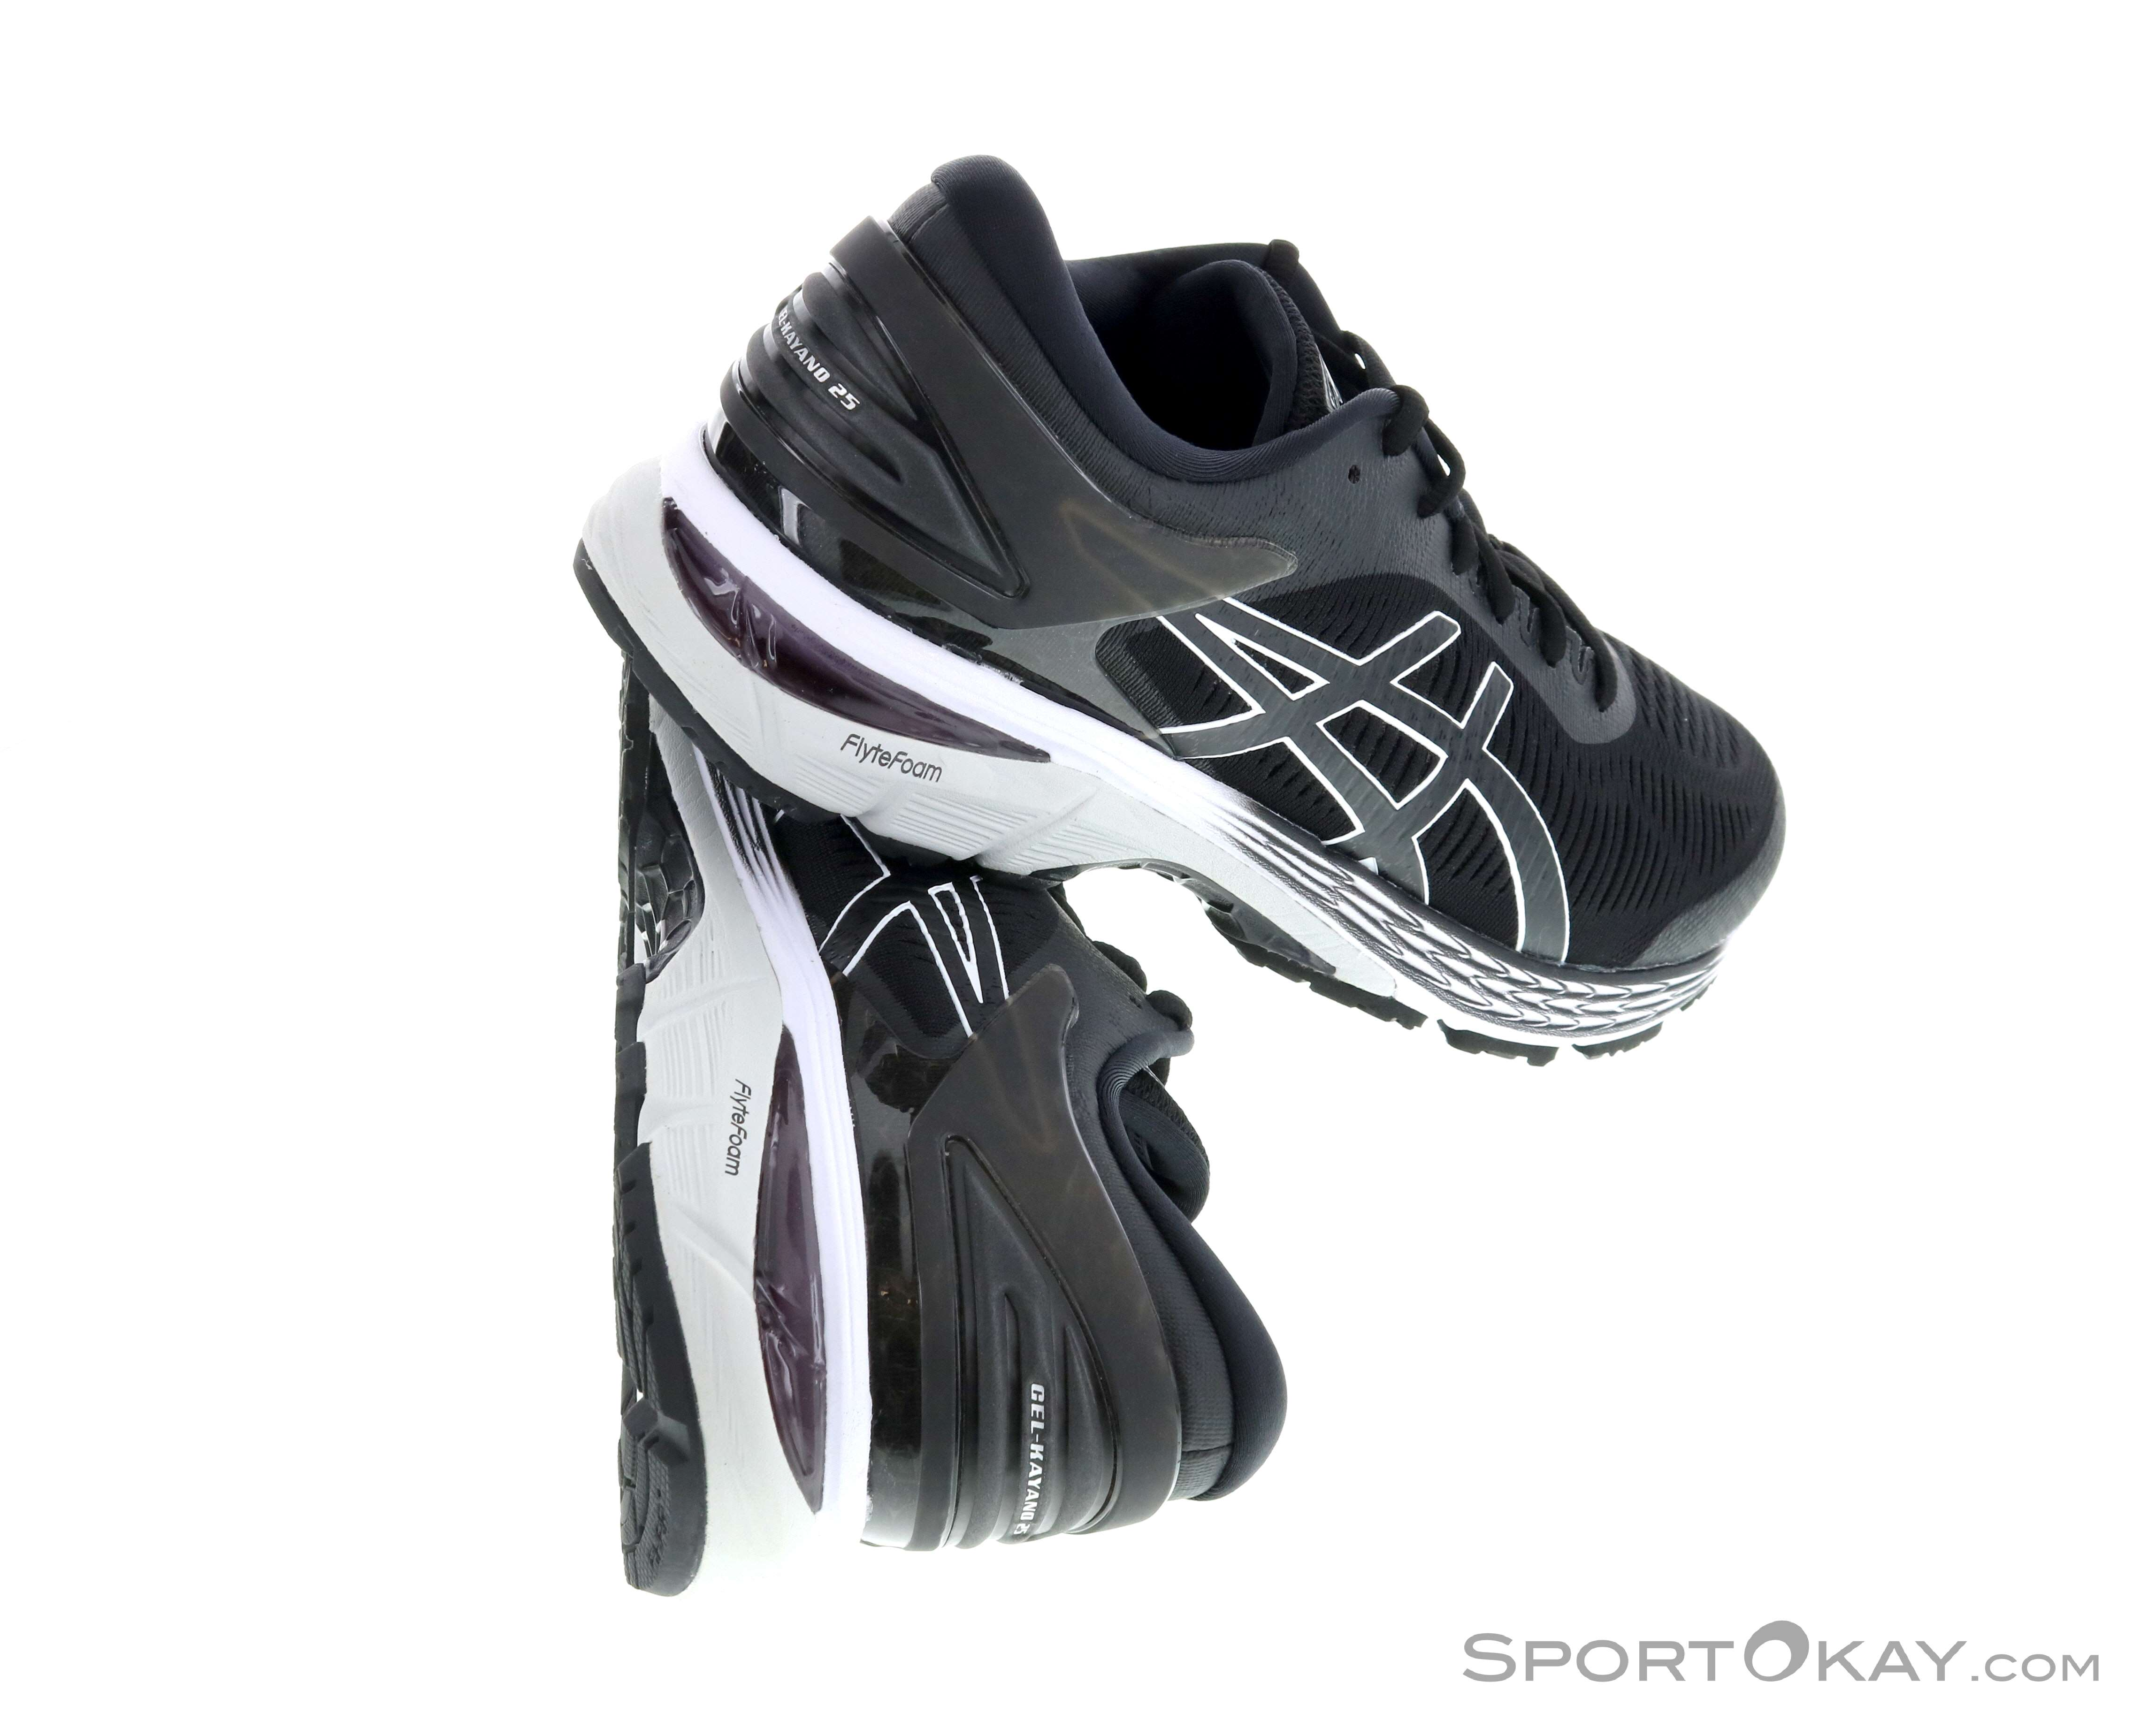 Asics Kayano 25 Mens Running Shoes All Round Running Shoes